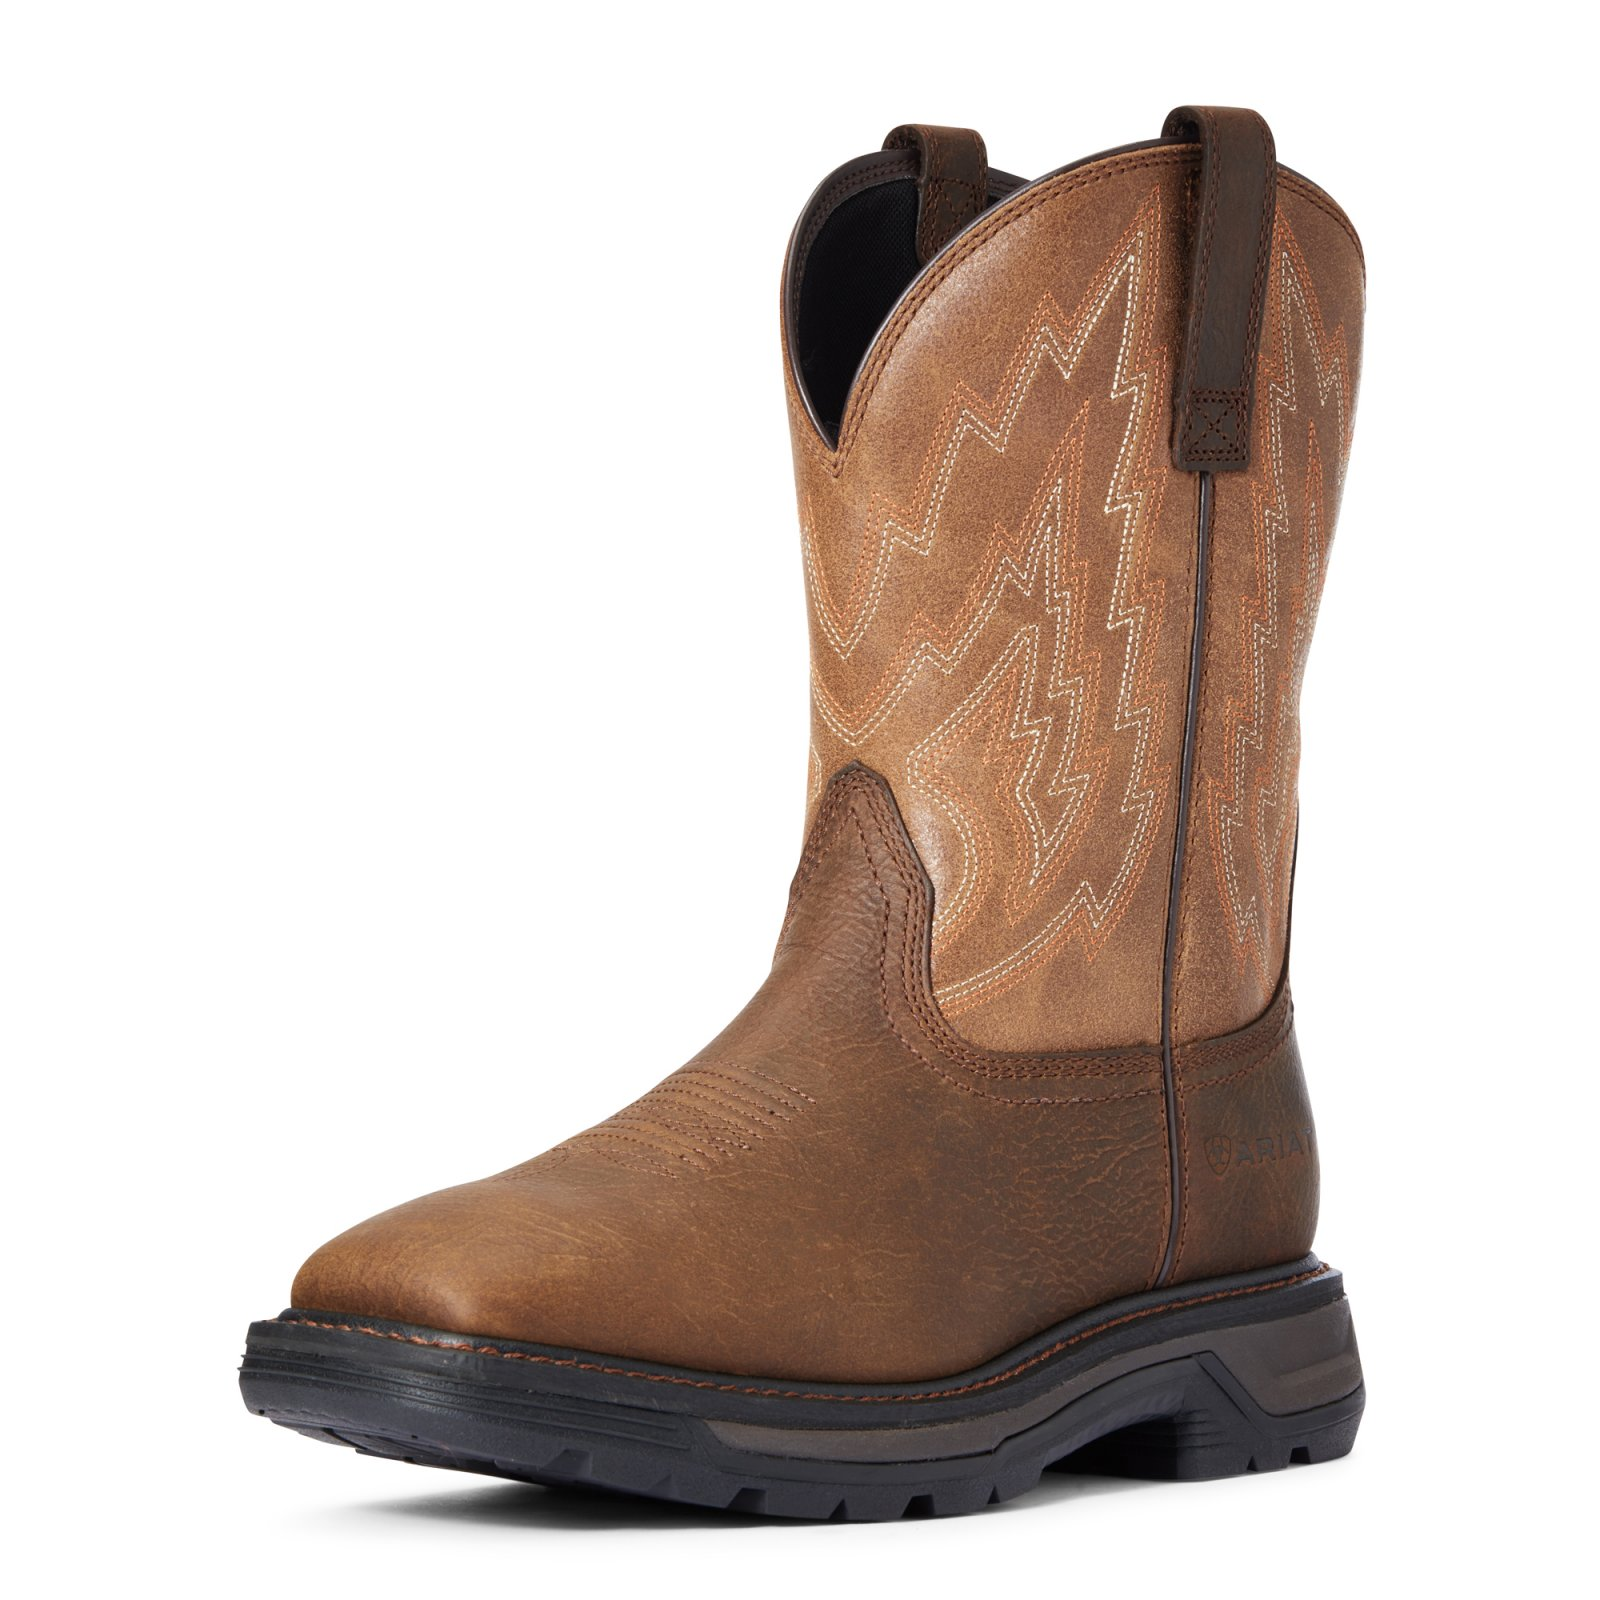 Big Rig Workboot from Ariat